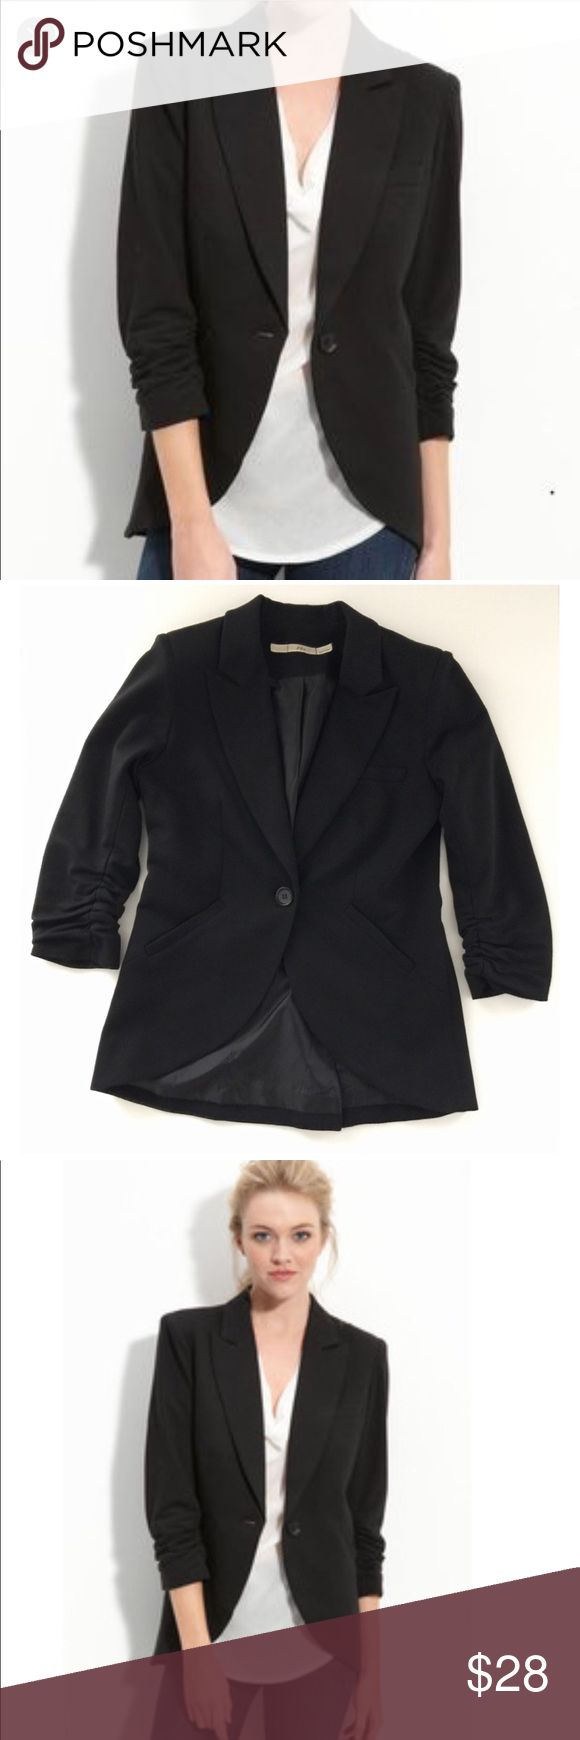 "Nordstrom Gibson Ruched Sleeve Blazer - small Gibson Ruched Sleeves Blazer from Nordstrom in Black  Flattering curved hem blazer can be dressed up or casual with jeans. EUC Ruched 3/4 Sleeves; 1 Button Front Closure; 2 Front Faux Pockets; Fully Lined. Length 25""-27"" / Bust 18"" Gibson Jackets & Coats Blazers"